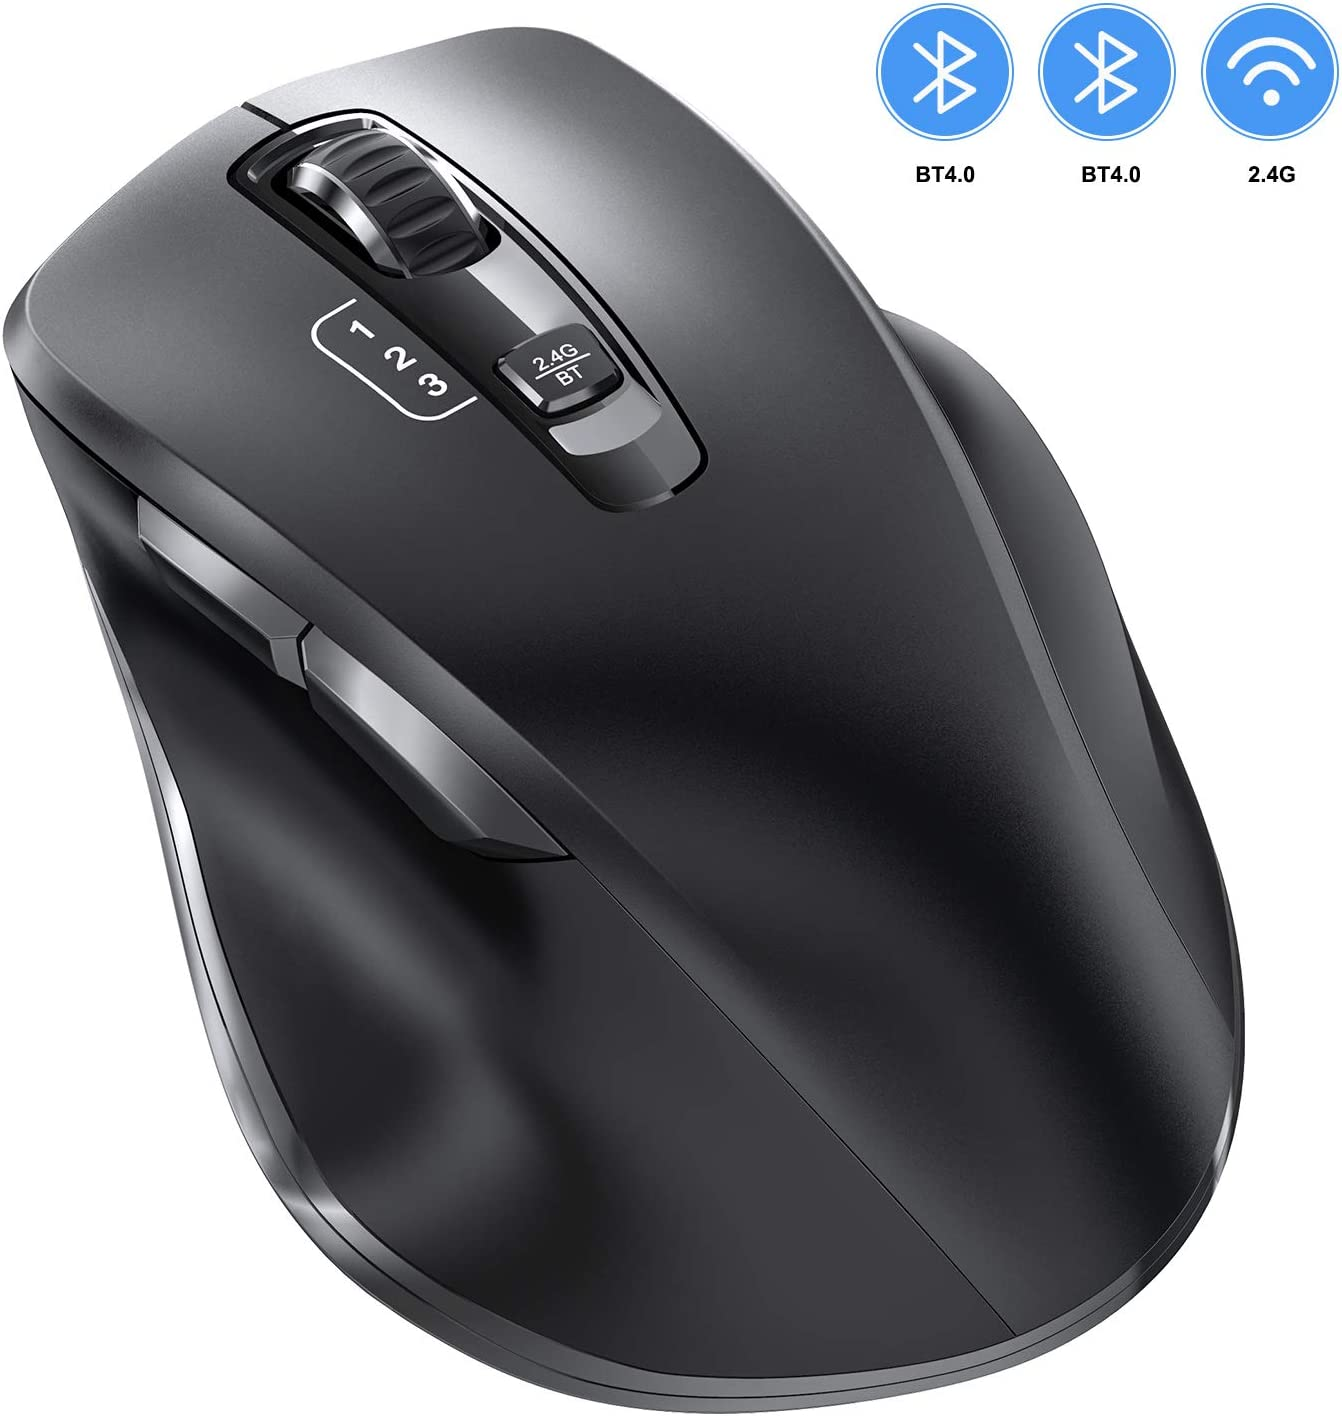 Bluetooth Mouse, Vogek Wireless Mouse Support 3 Devices (Dual Bluetooth & USB) with 3 Levels Adjustable DPI Ergonomic Design Optical Computer Mouse for Laptop iPad Computer Windows/Mac/Android Black